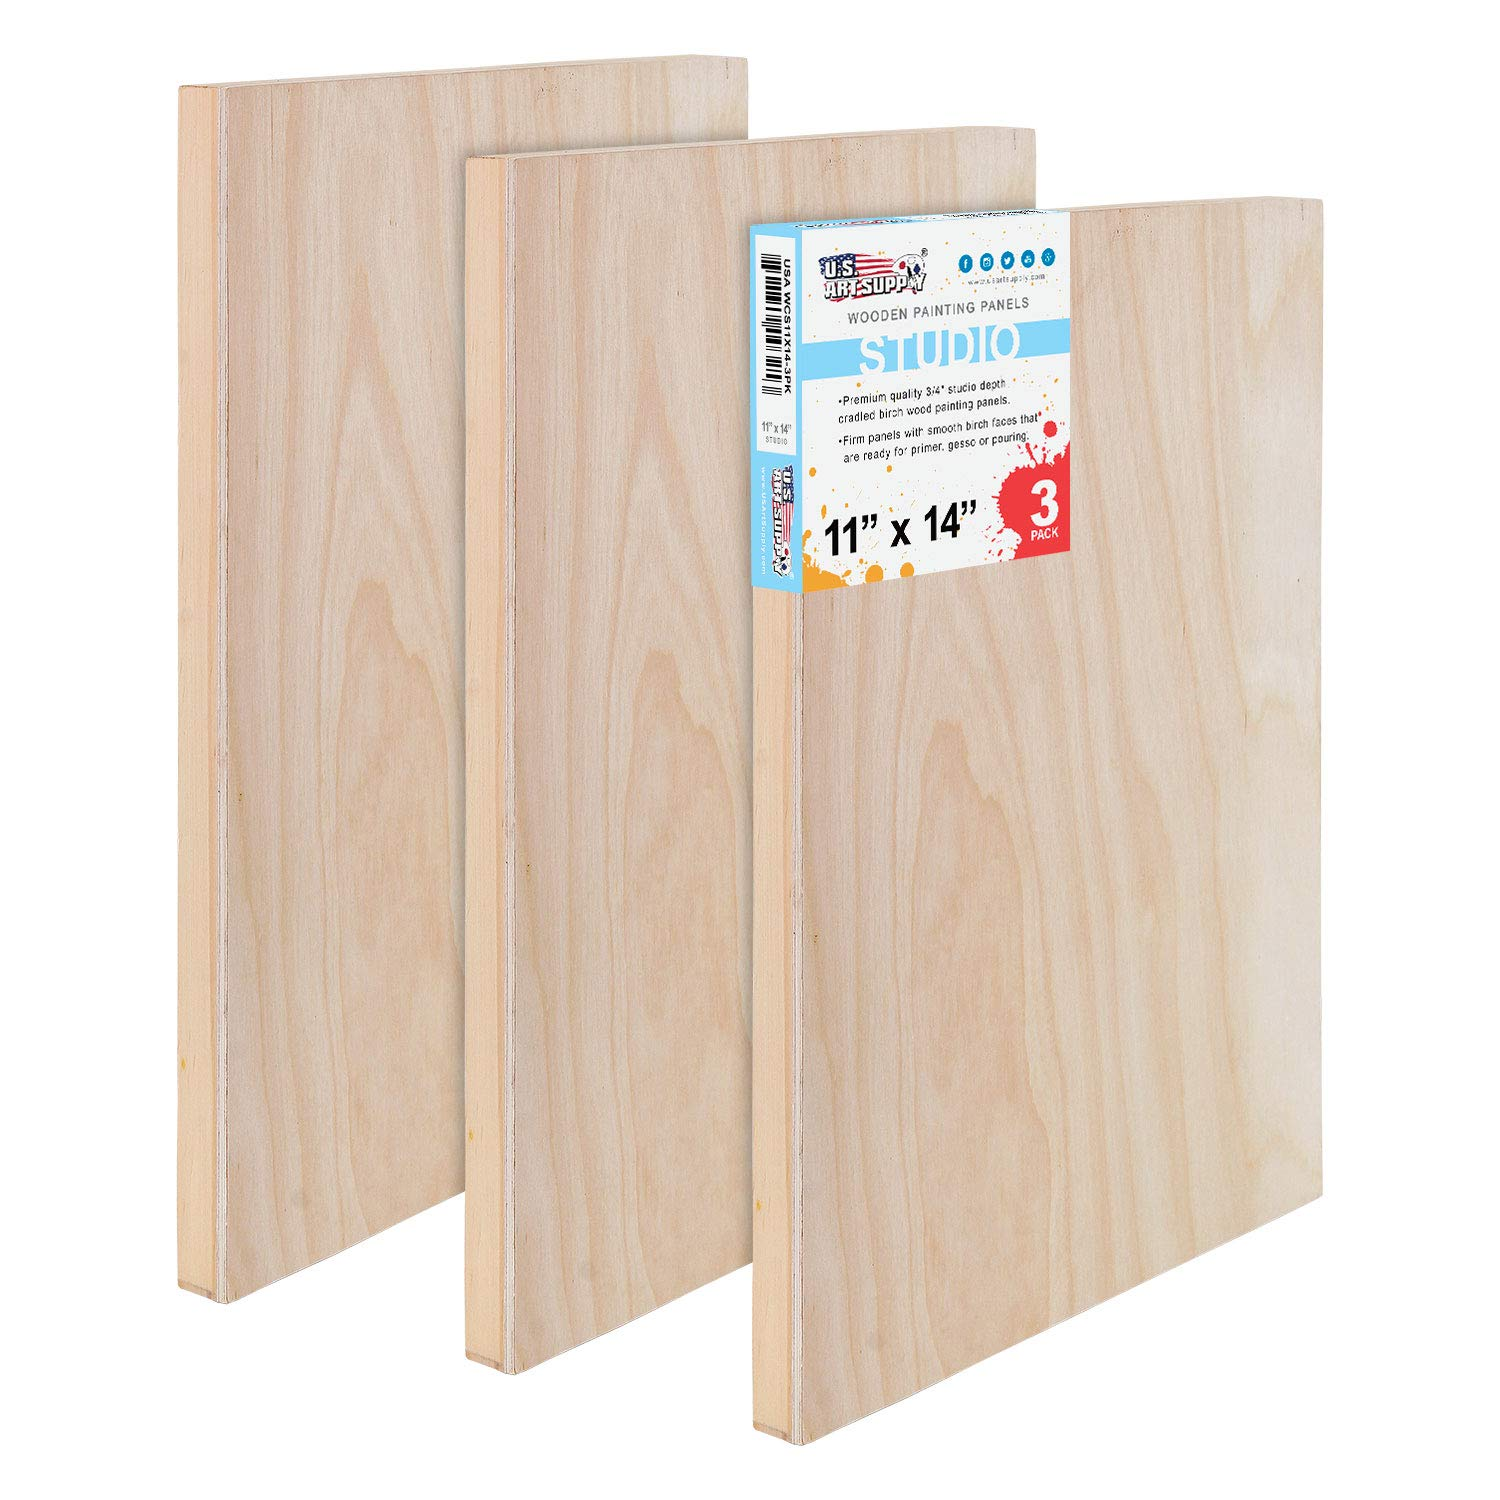 U.S. Art Supply 11'' x 14'' Birch Wood Paint Pouring Panel Boards, Studio 3/4'' Deep Cradle (Pack of 3) - Artist Wooden Wall Canvases - Painting Mixed-Media Craft, Acrylic, Oil, Watercolor, Encaustic